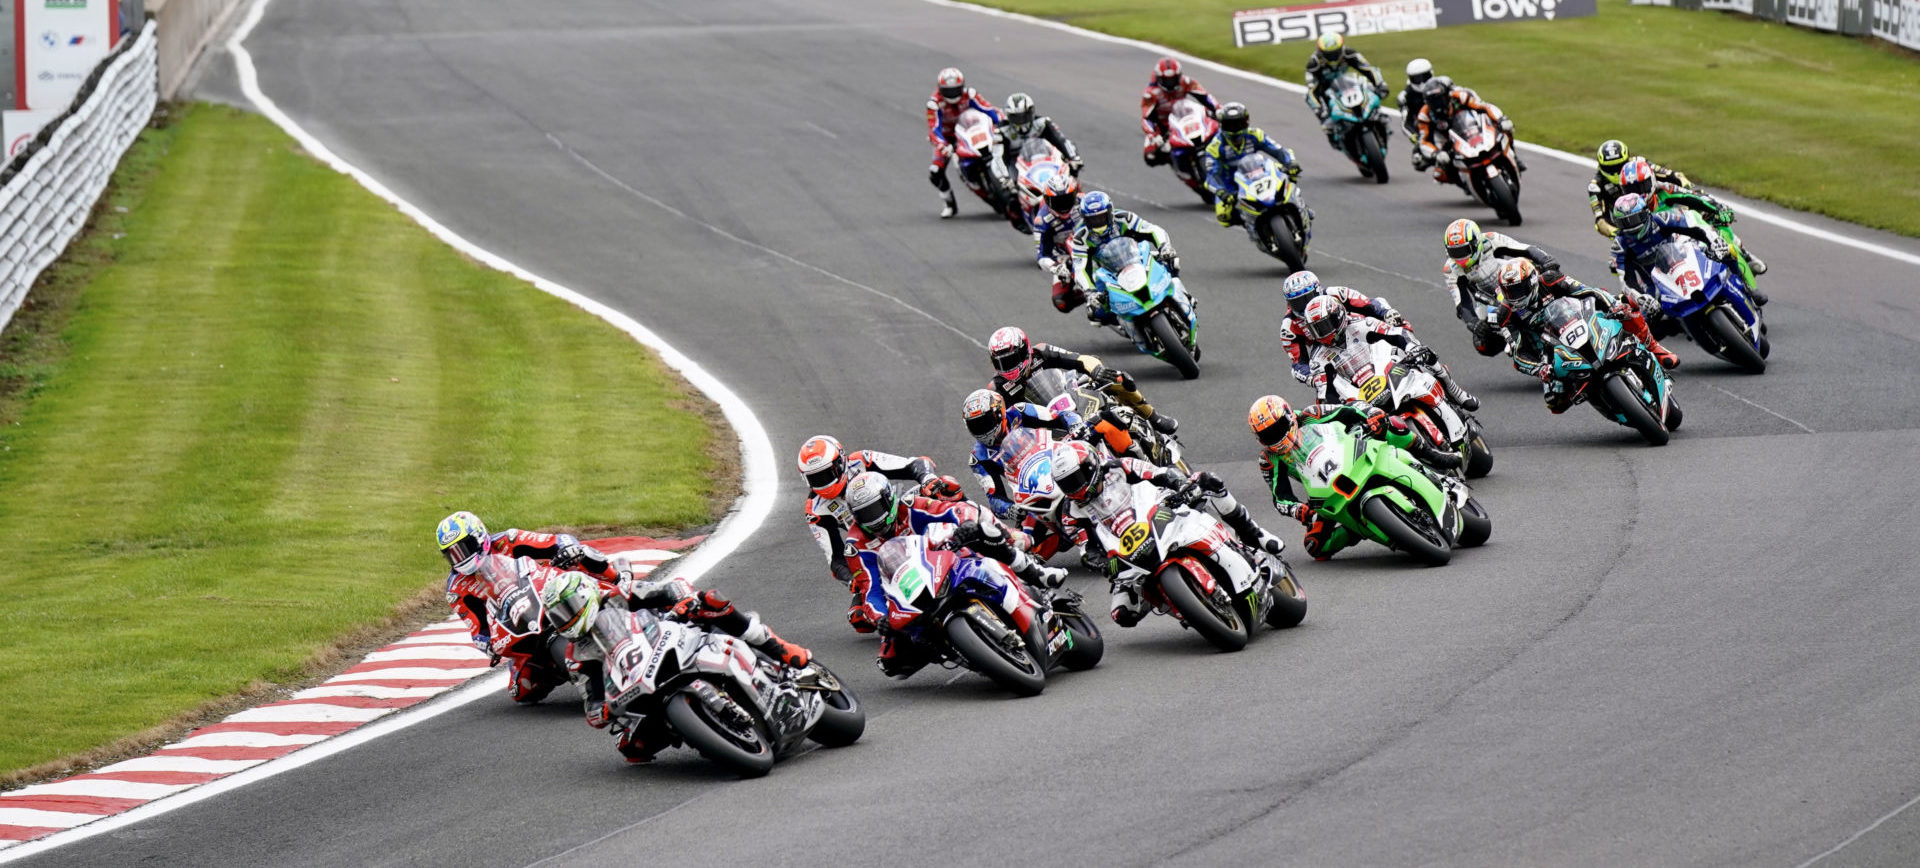 Tommy Bridewell (46) leads the start of a British Superbike race Sunday at Oulton Park. Photo courtesy MSVR.